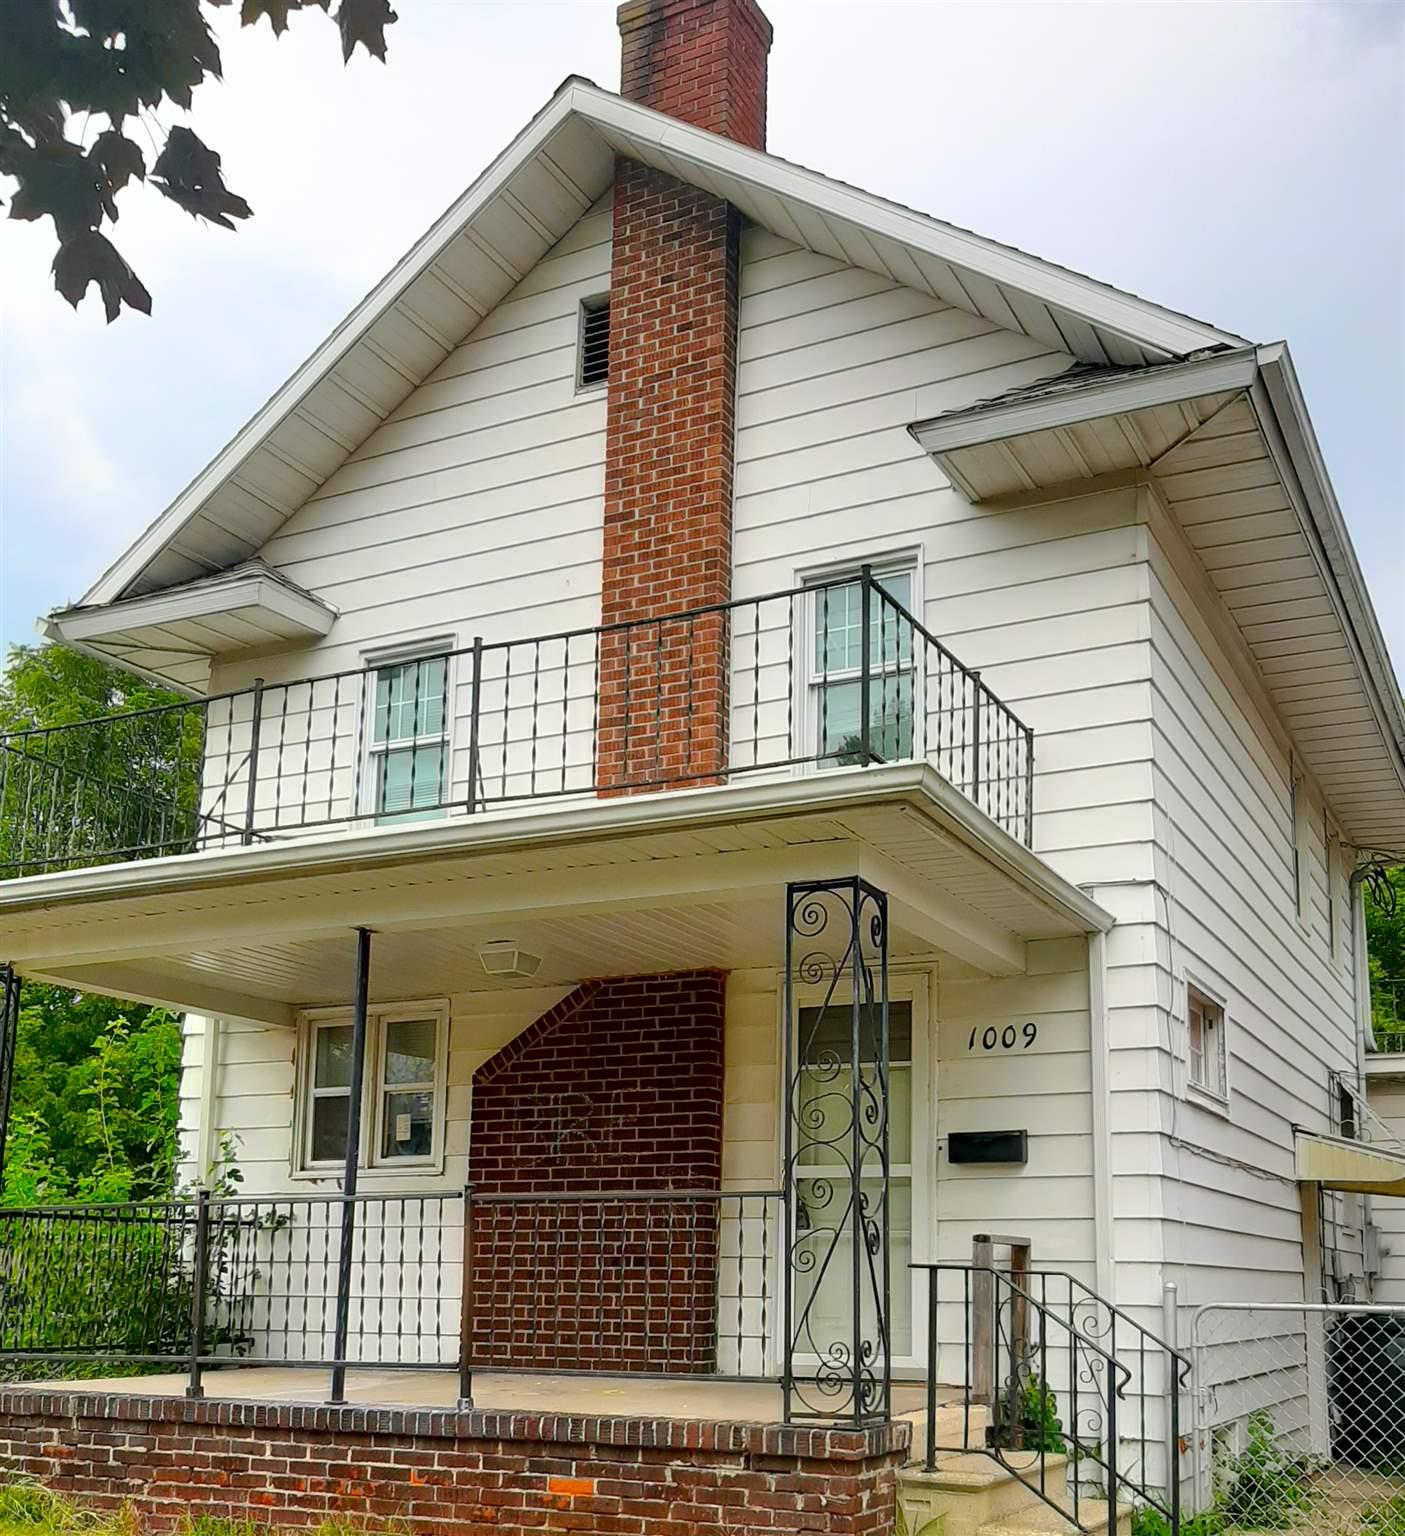 1009 W Lasalle South Bend, IN 46601